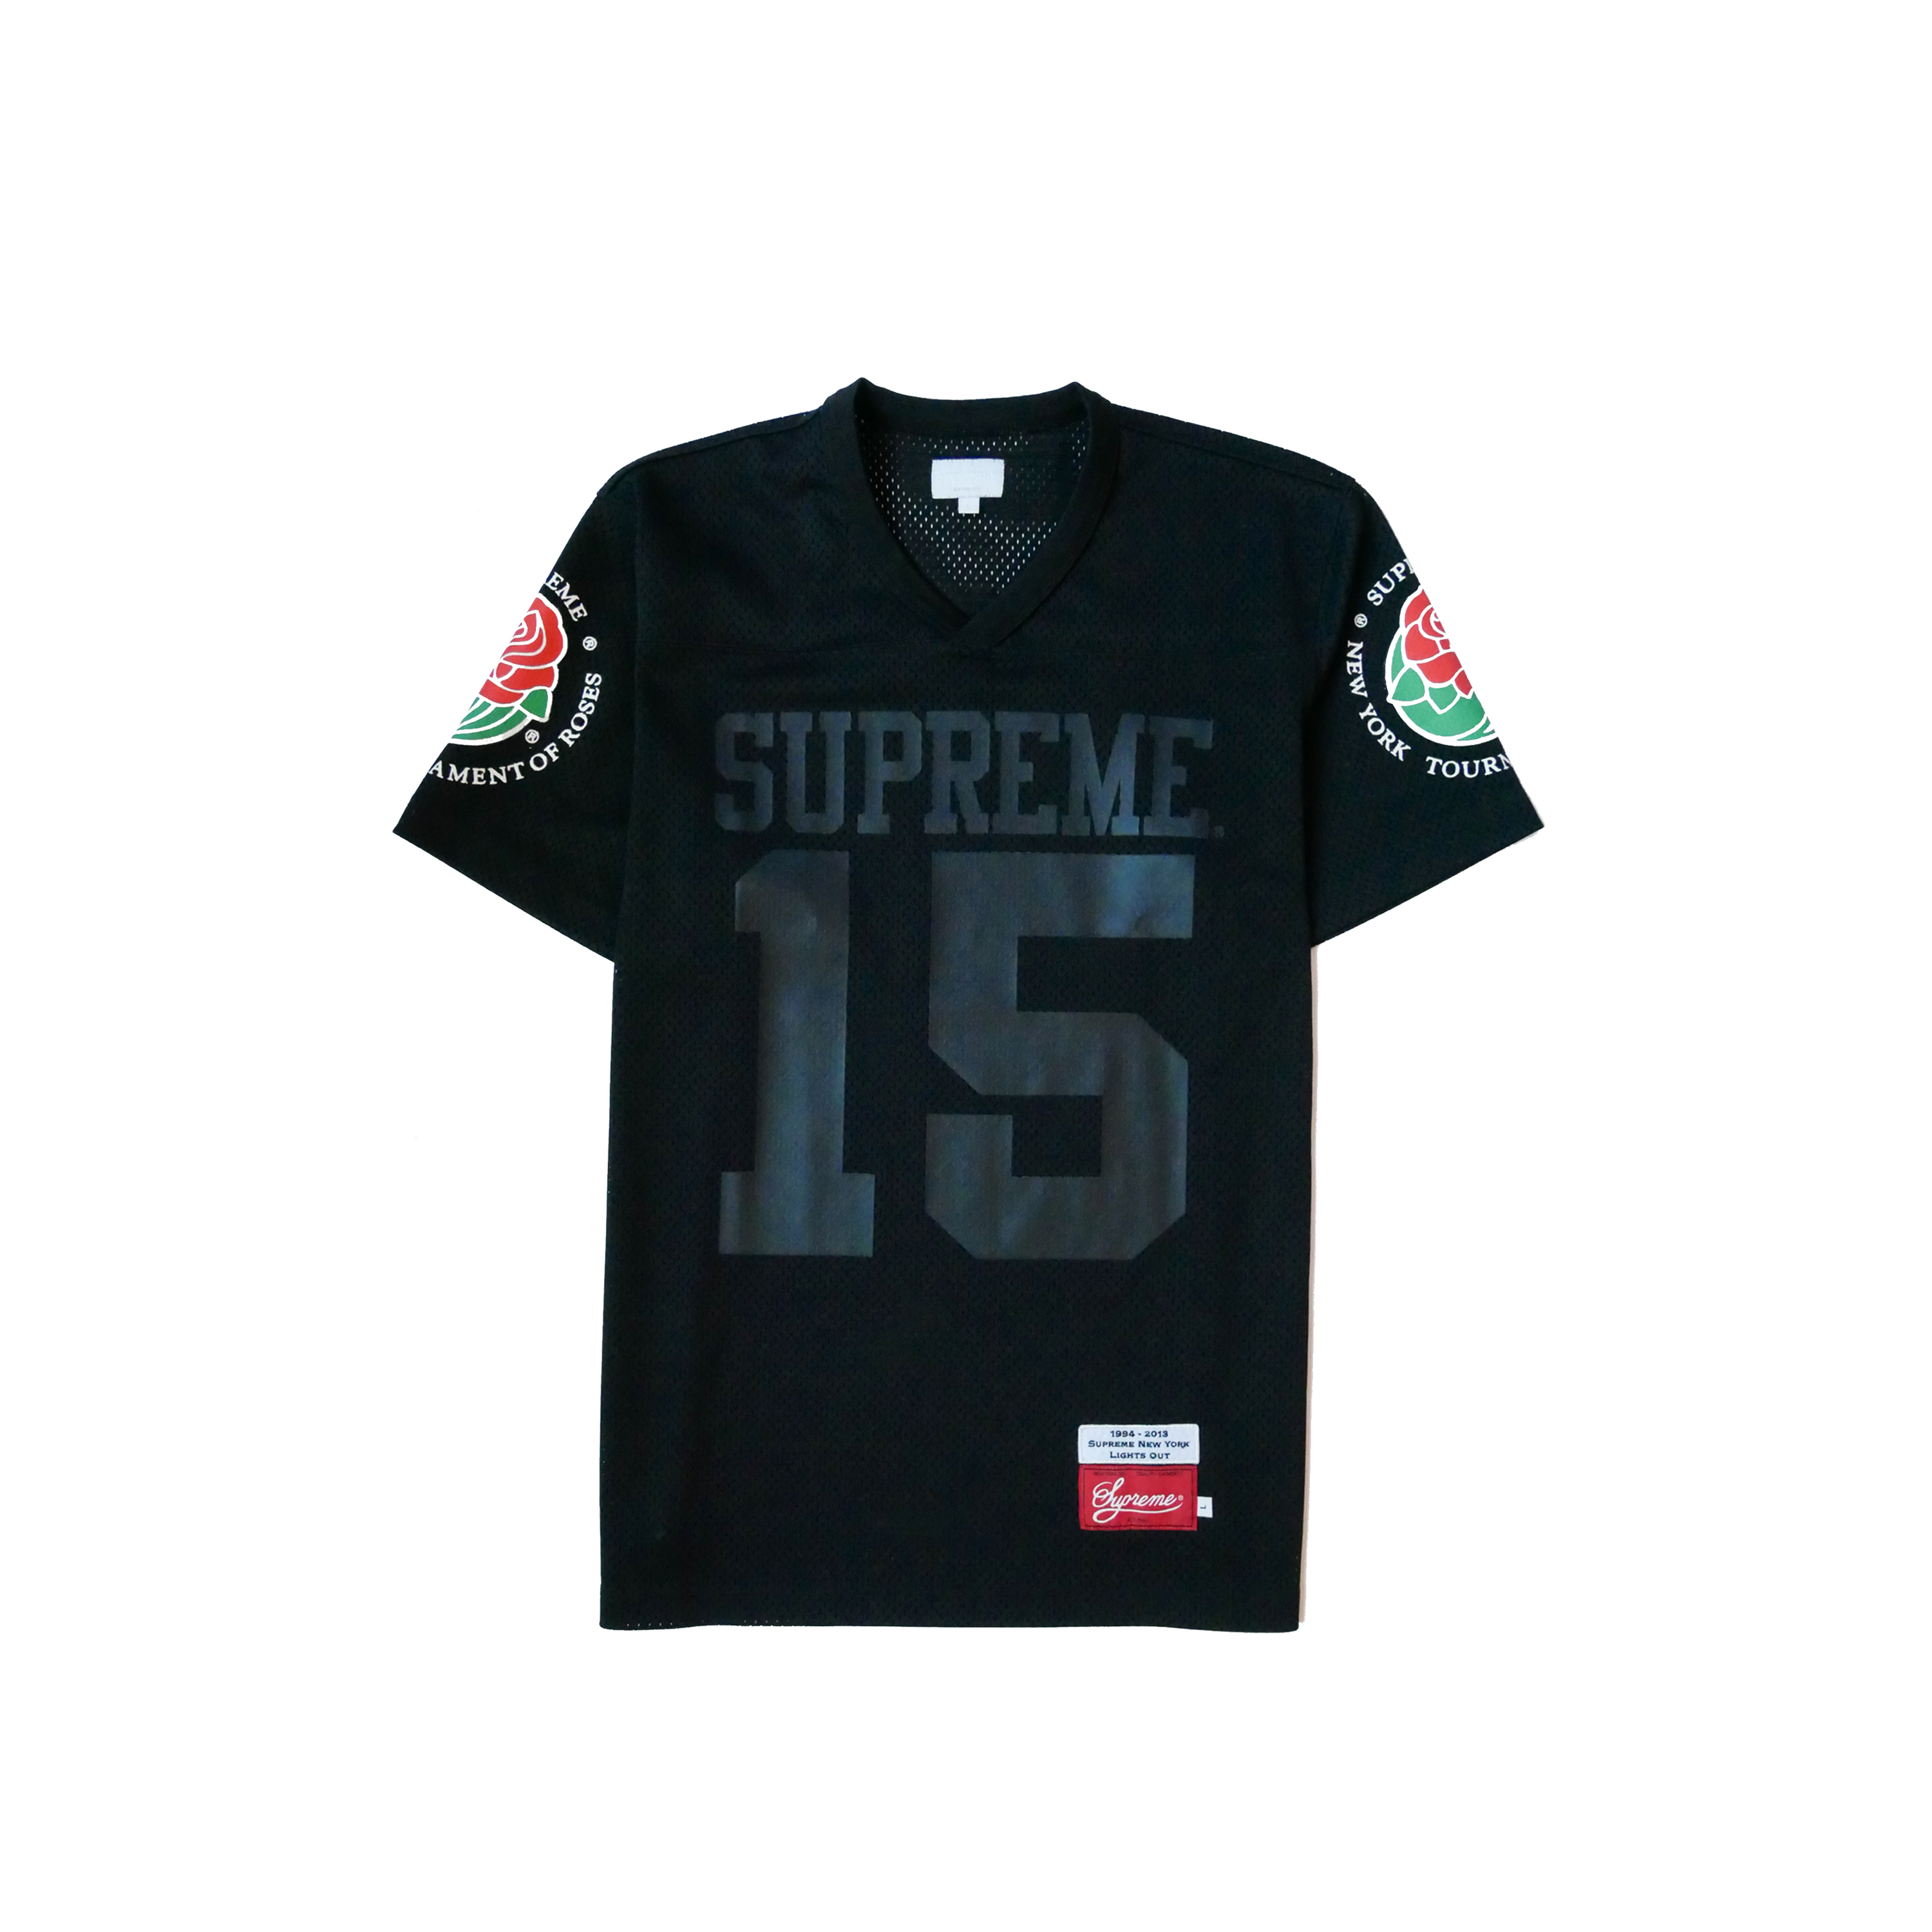 Supreme Tournament of Roses Football Jersey